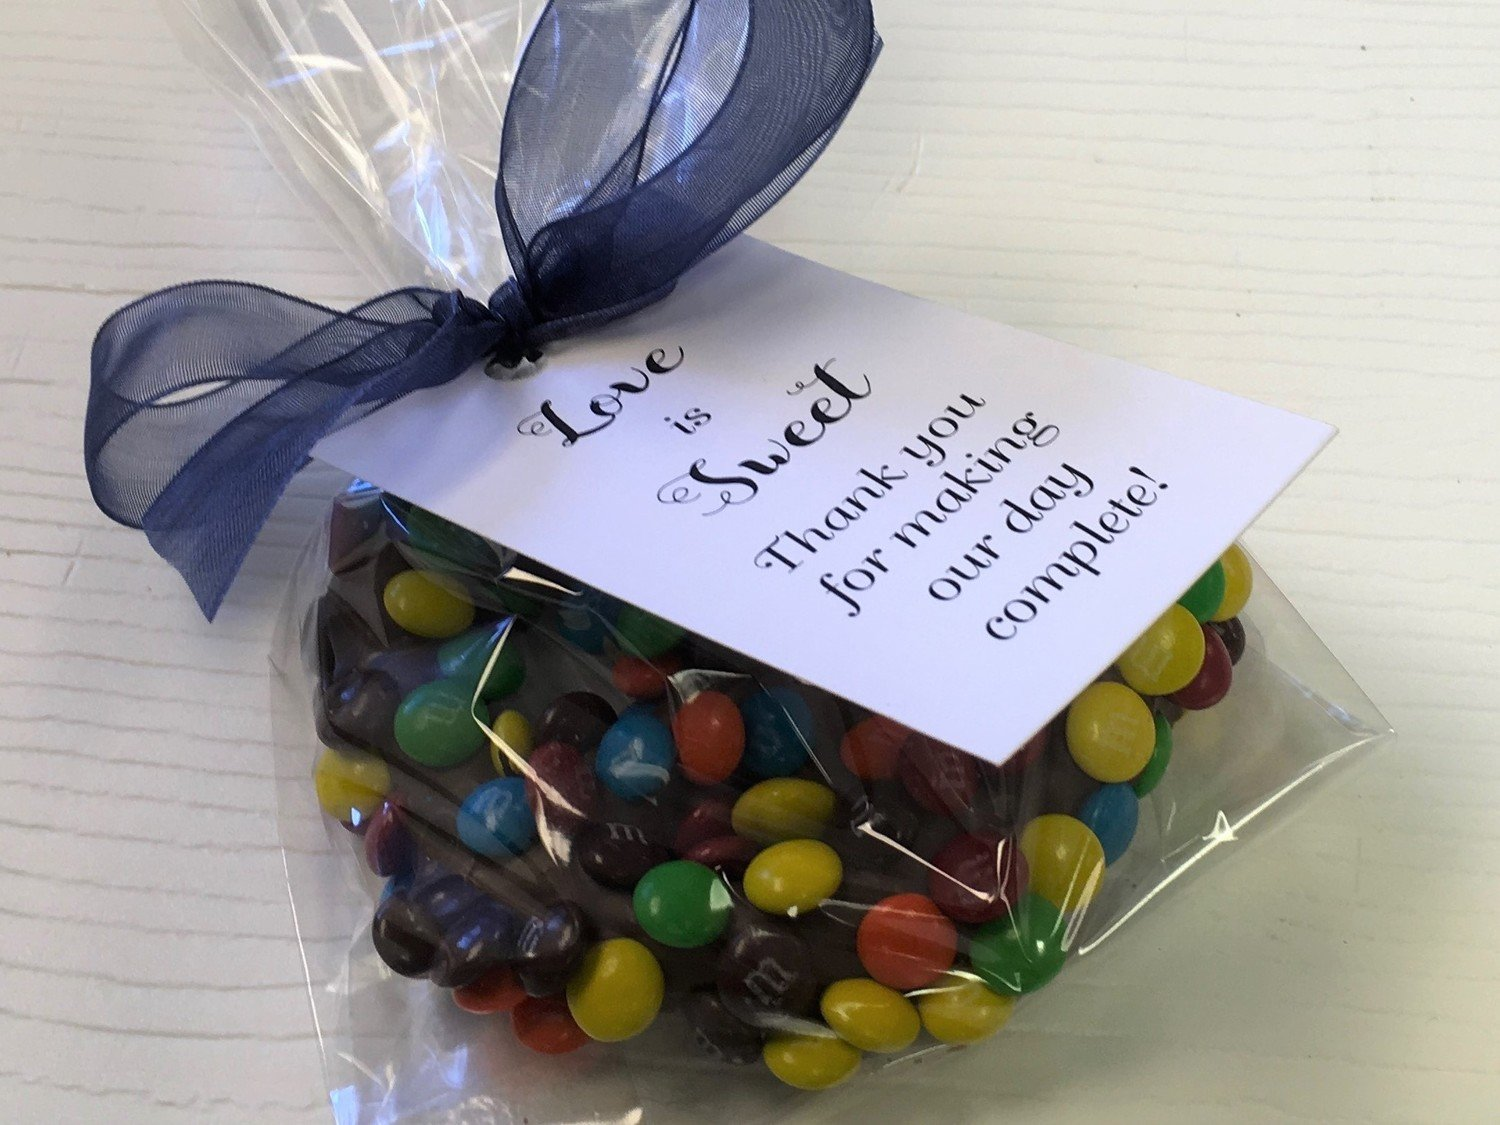 M&M 3 Ring  Gourmet Pretzel Favor.  Please chose ribbon color.  Tag is 112.50 extra per 25.  5 day pre orders over 50